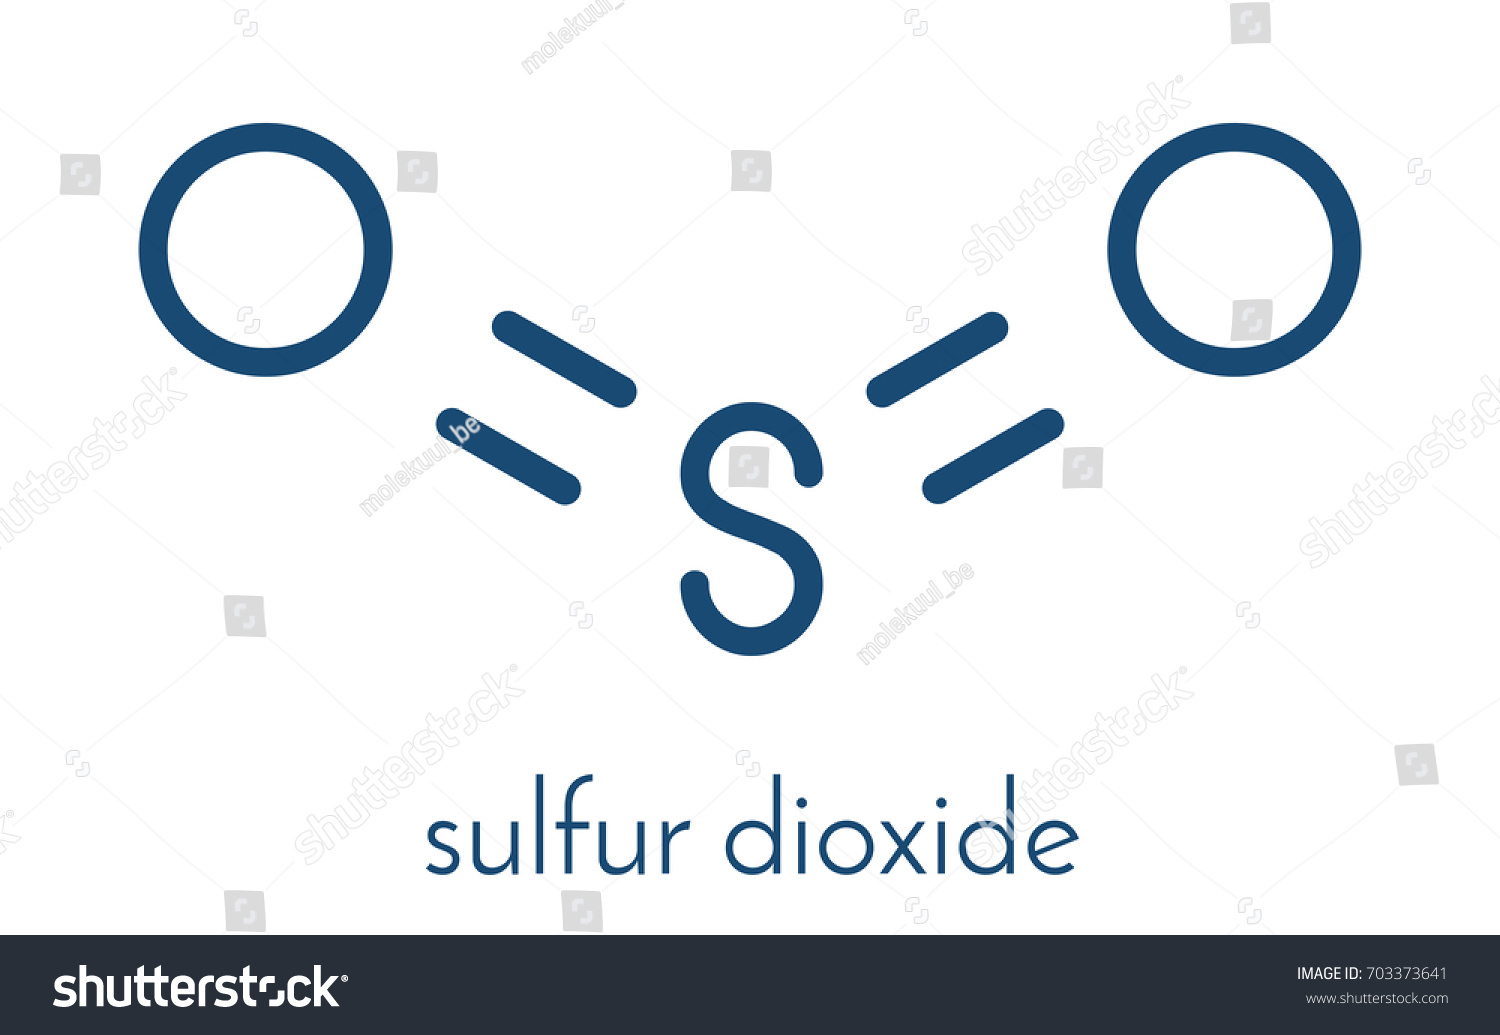 Sulfur in the periodic table images periodic table images sulfur dioxide food preservative molecule e220 stock vector sulfur dioxide food preservative molecule e220 also used gamestrikefo Image collections